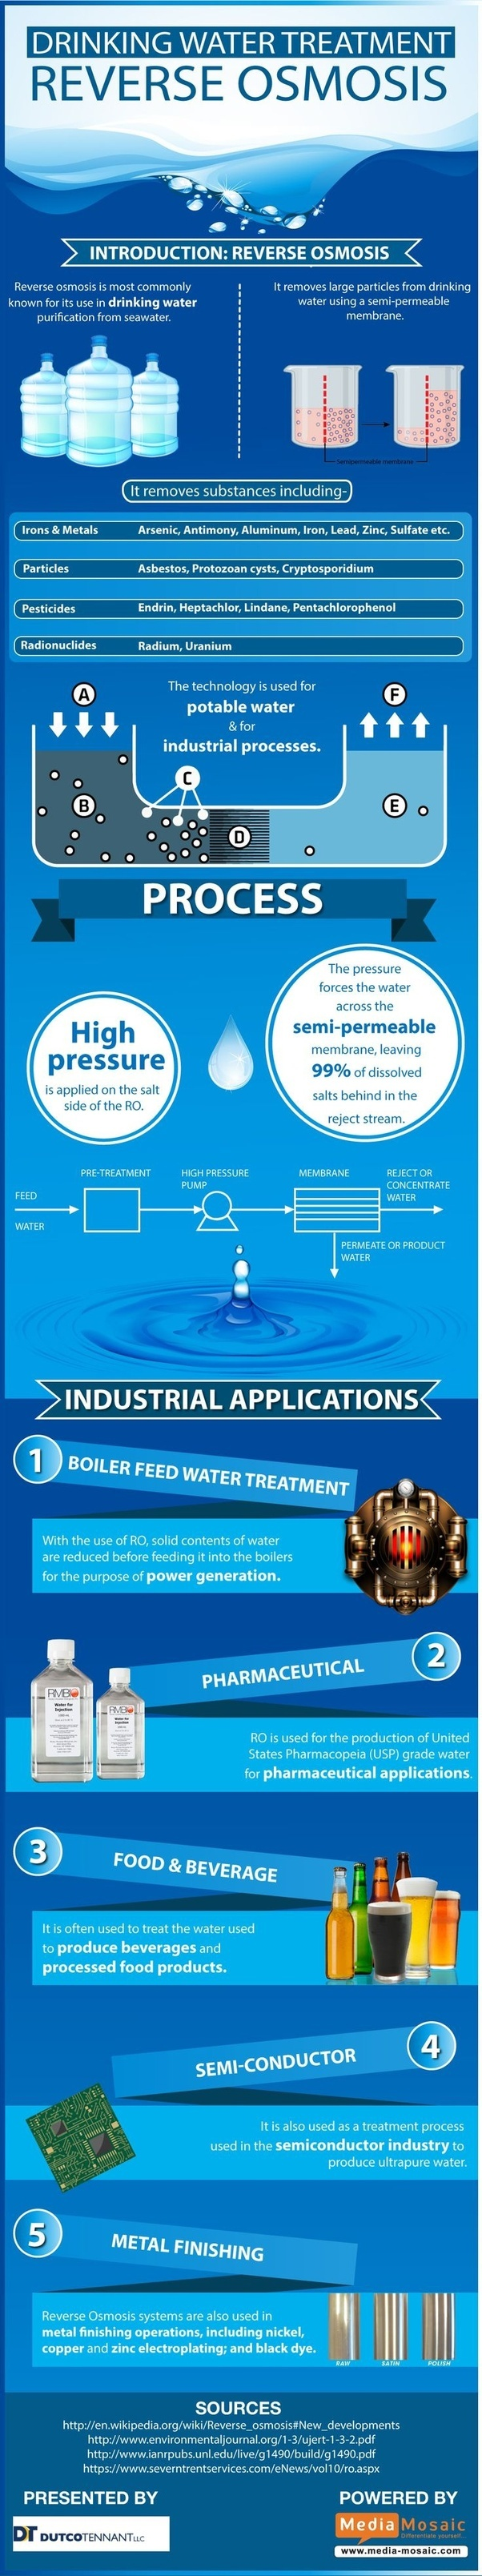 What is the best water purifier available in India Quora